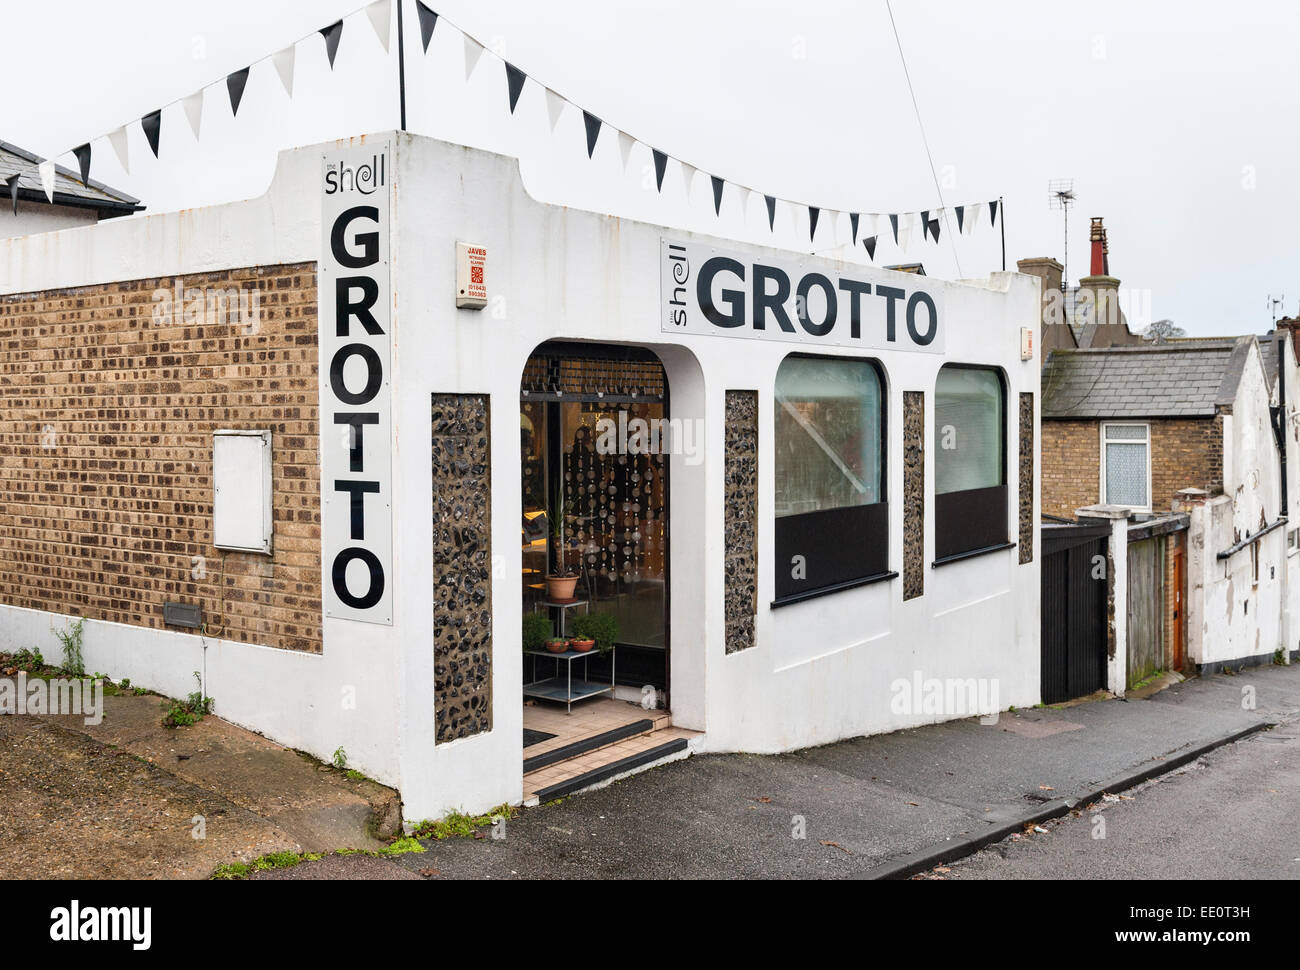 Margate, Kent. Entrance to the subterranean Shell Grotto, discovered in 1835. Stock Photo